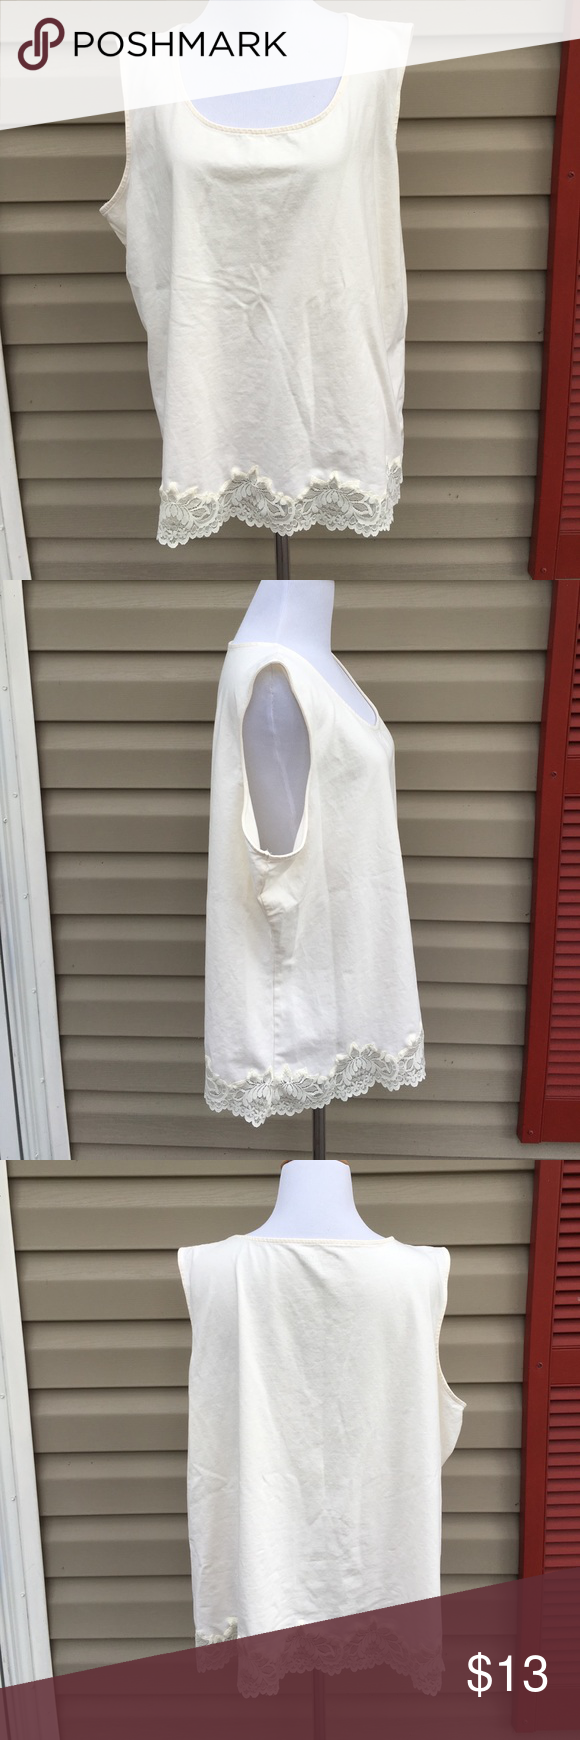 "Coldwater Creek women's sleeveless ivory top Very nice sleeveless top with lace at hem . 95% cotton 5% spandex. No snags, stains, pilling, or holes. EUC. 25""W x 25""L Coldwater Creek Tops"